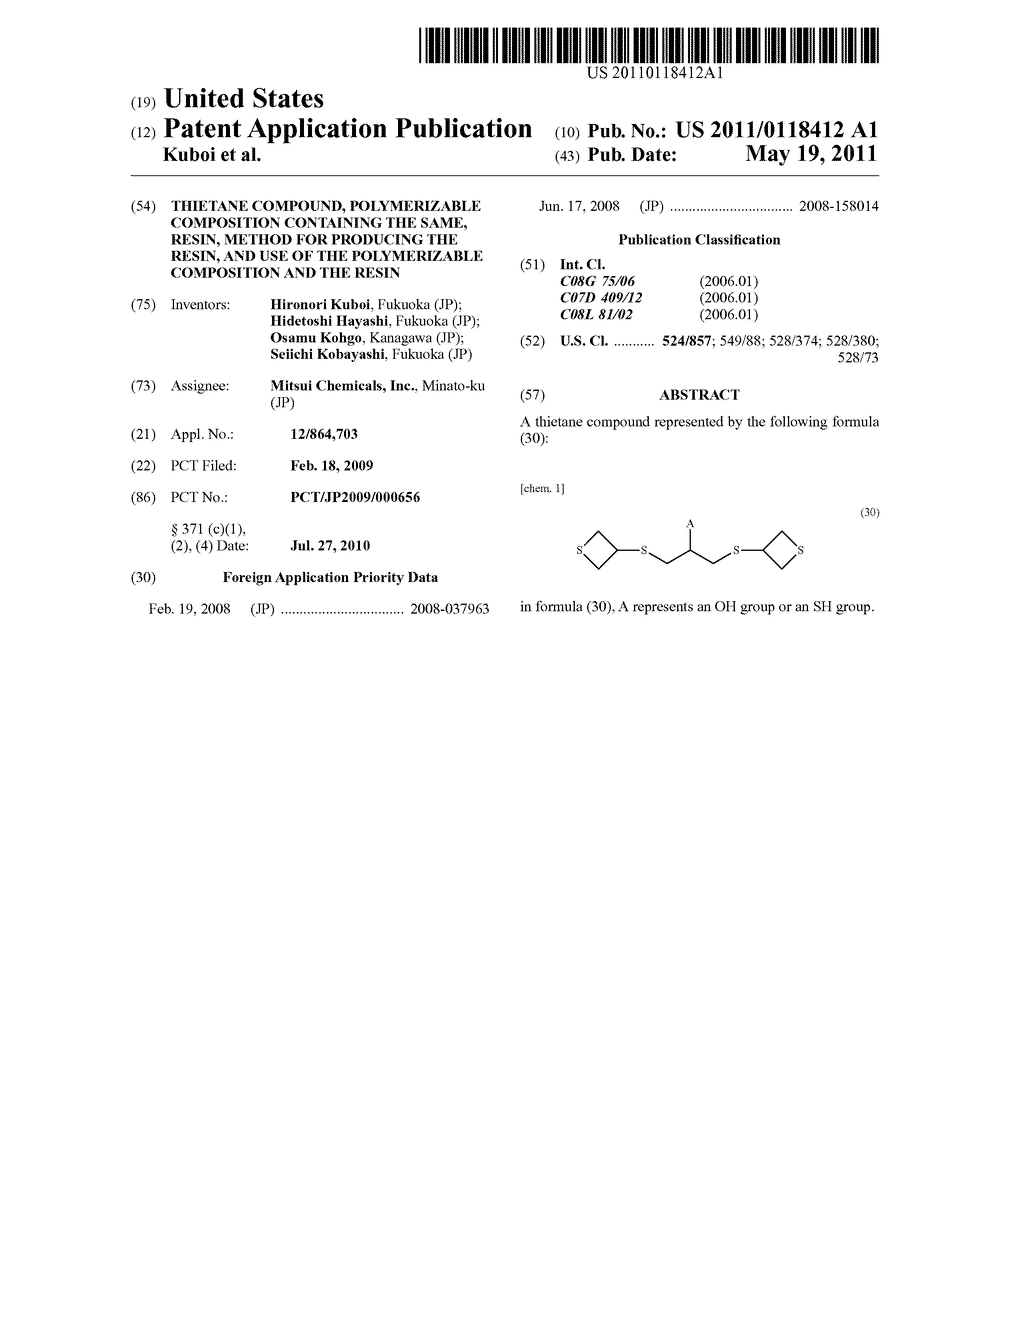 THIETANE COMPOUND, POLYMERIZABLE COMPOSITION CONTAINING THE SAME, RESIN, METHOD FOR PRODUCING THE RESIN, AND USE OF THE POLYMERIZABLE COMPOSITION AND THE RESIN - diagram, schematic, and image 01